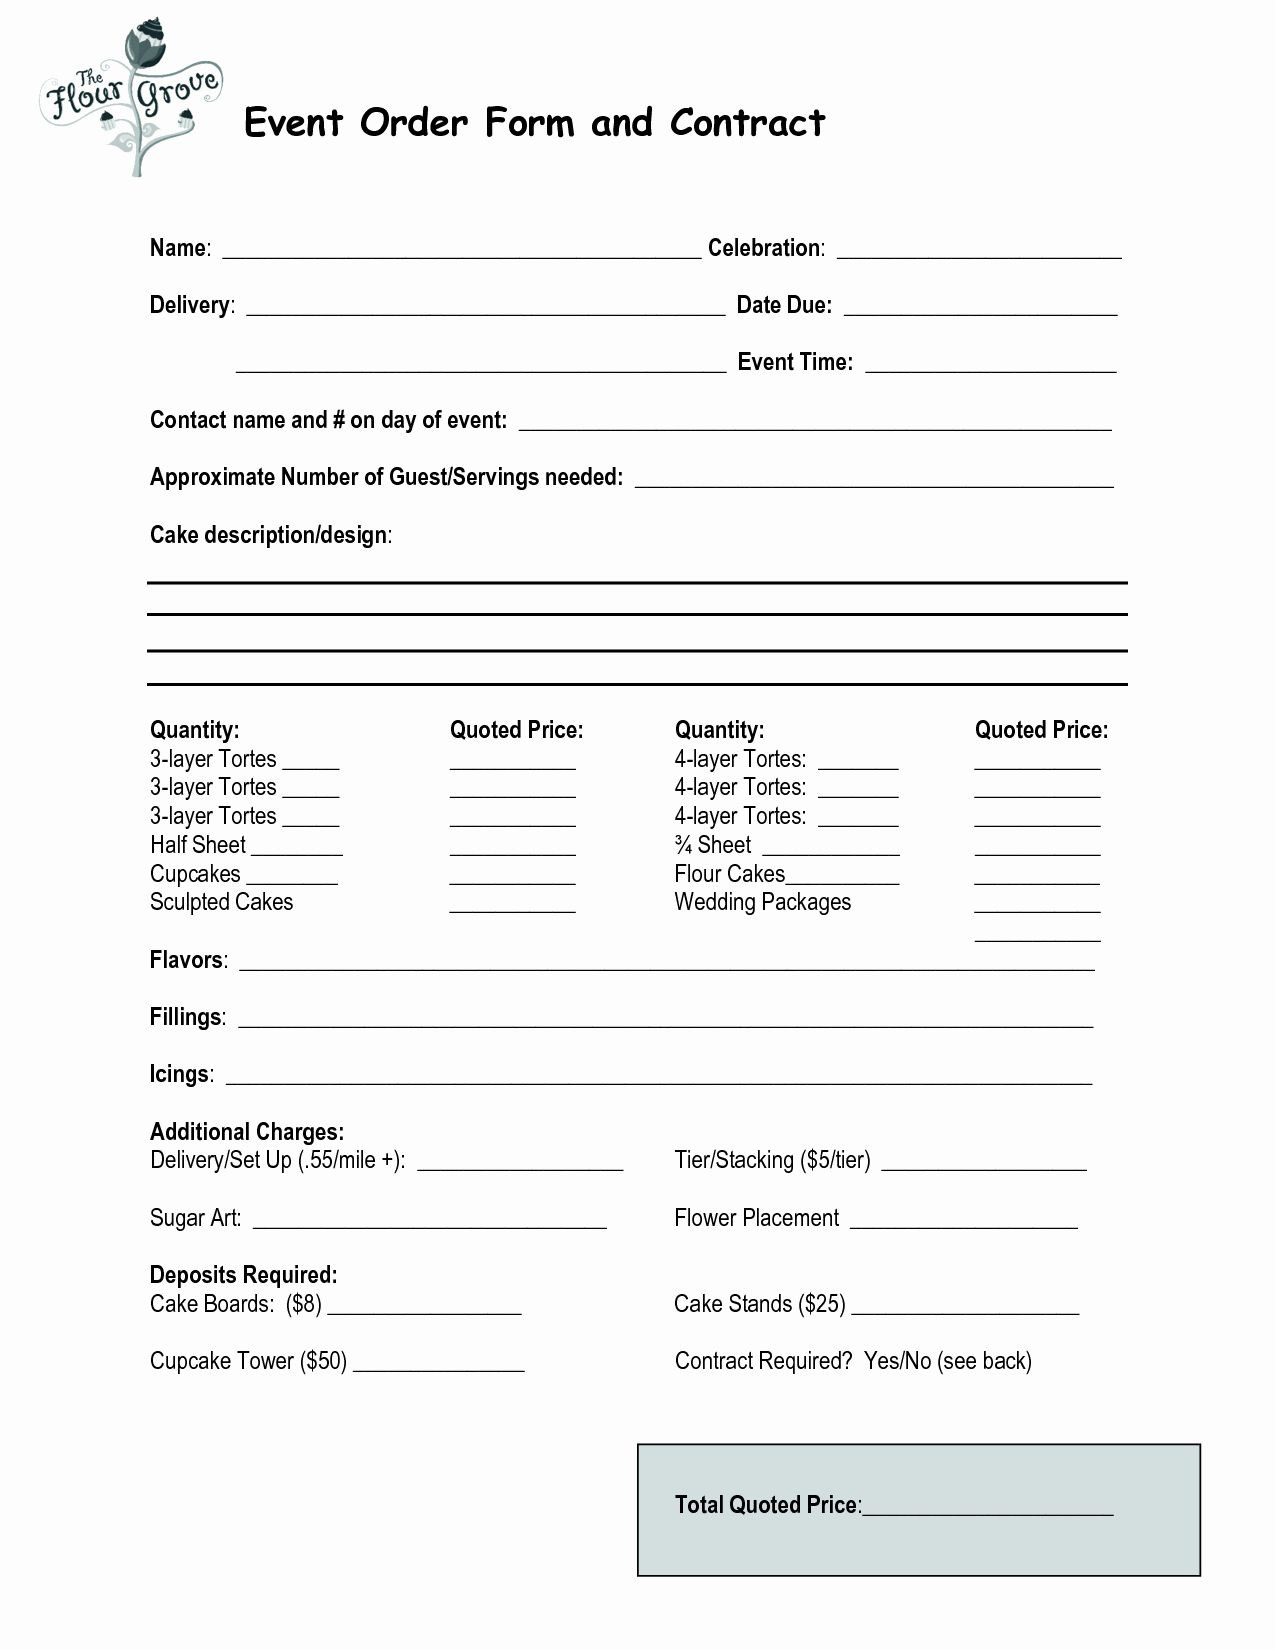 Cake Order Form Template Word Inspirational Cake Order Contract Event Order Form And Contract Wedding Cake Order Form Cake Pricing Cake Order Forms